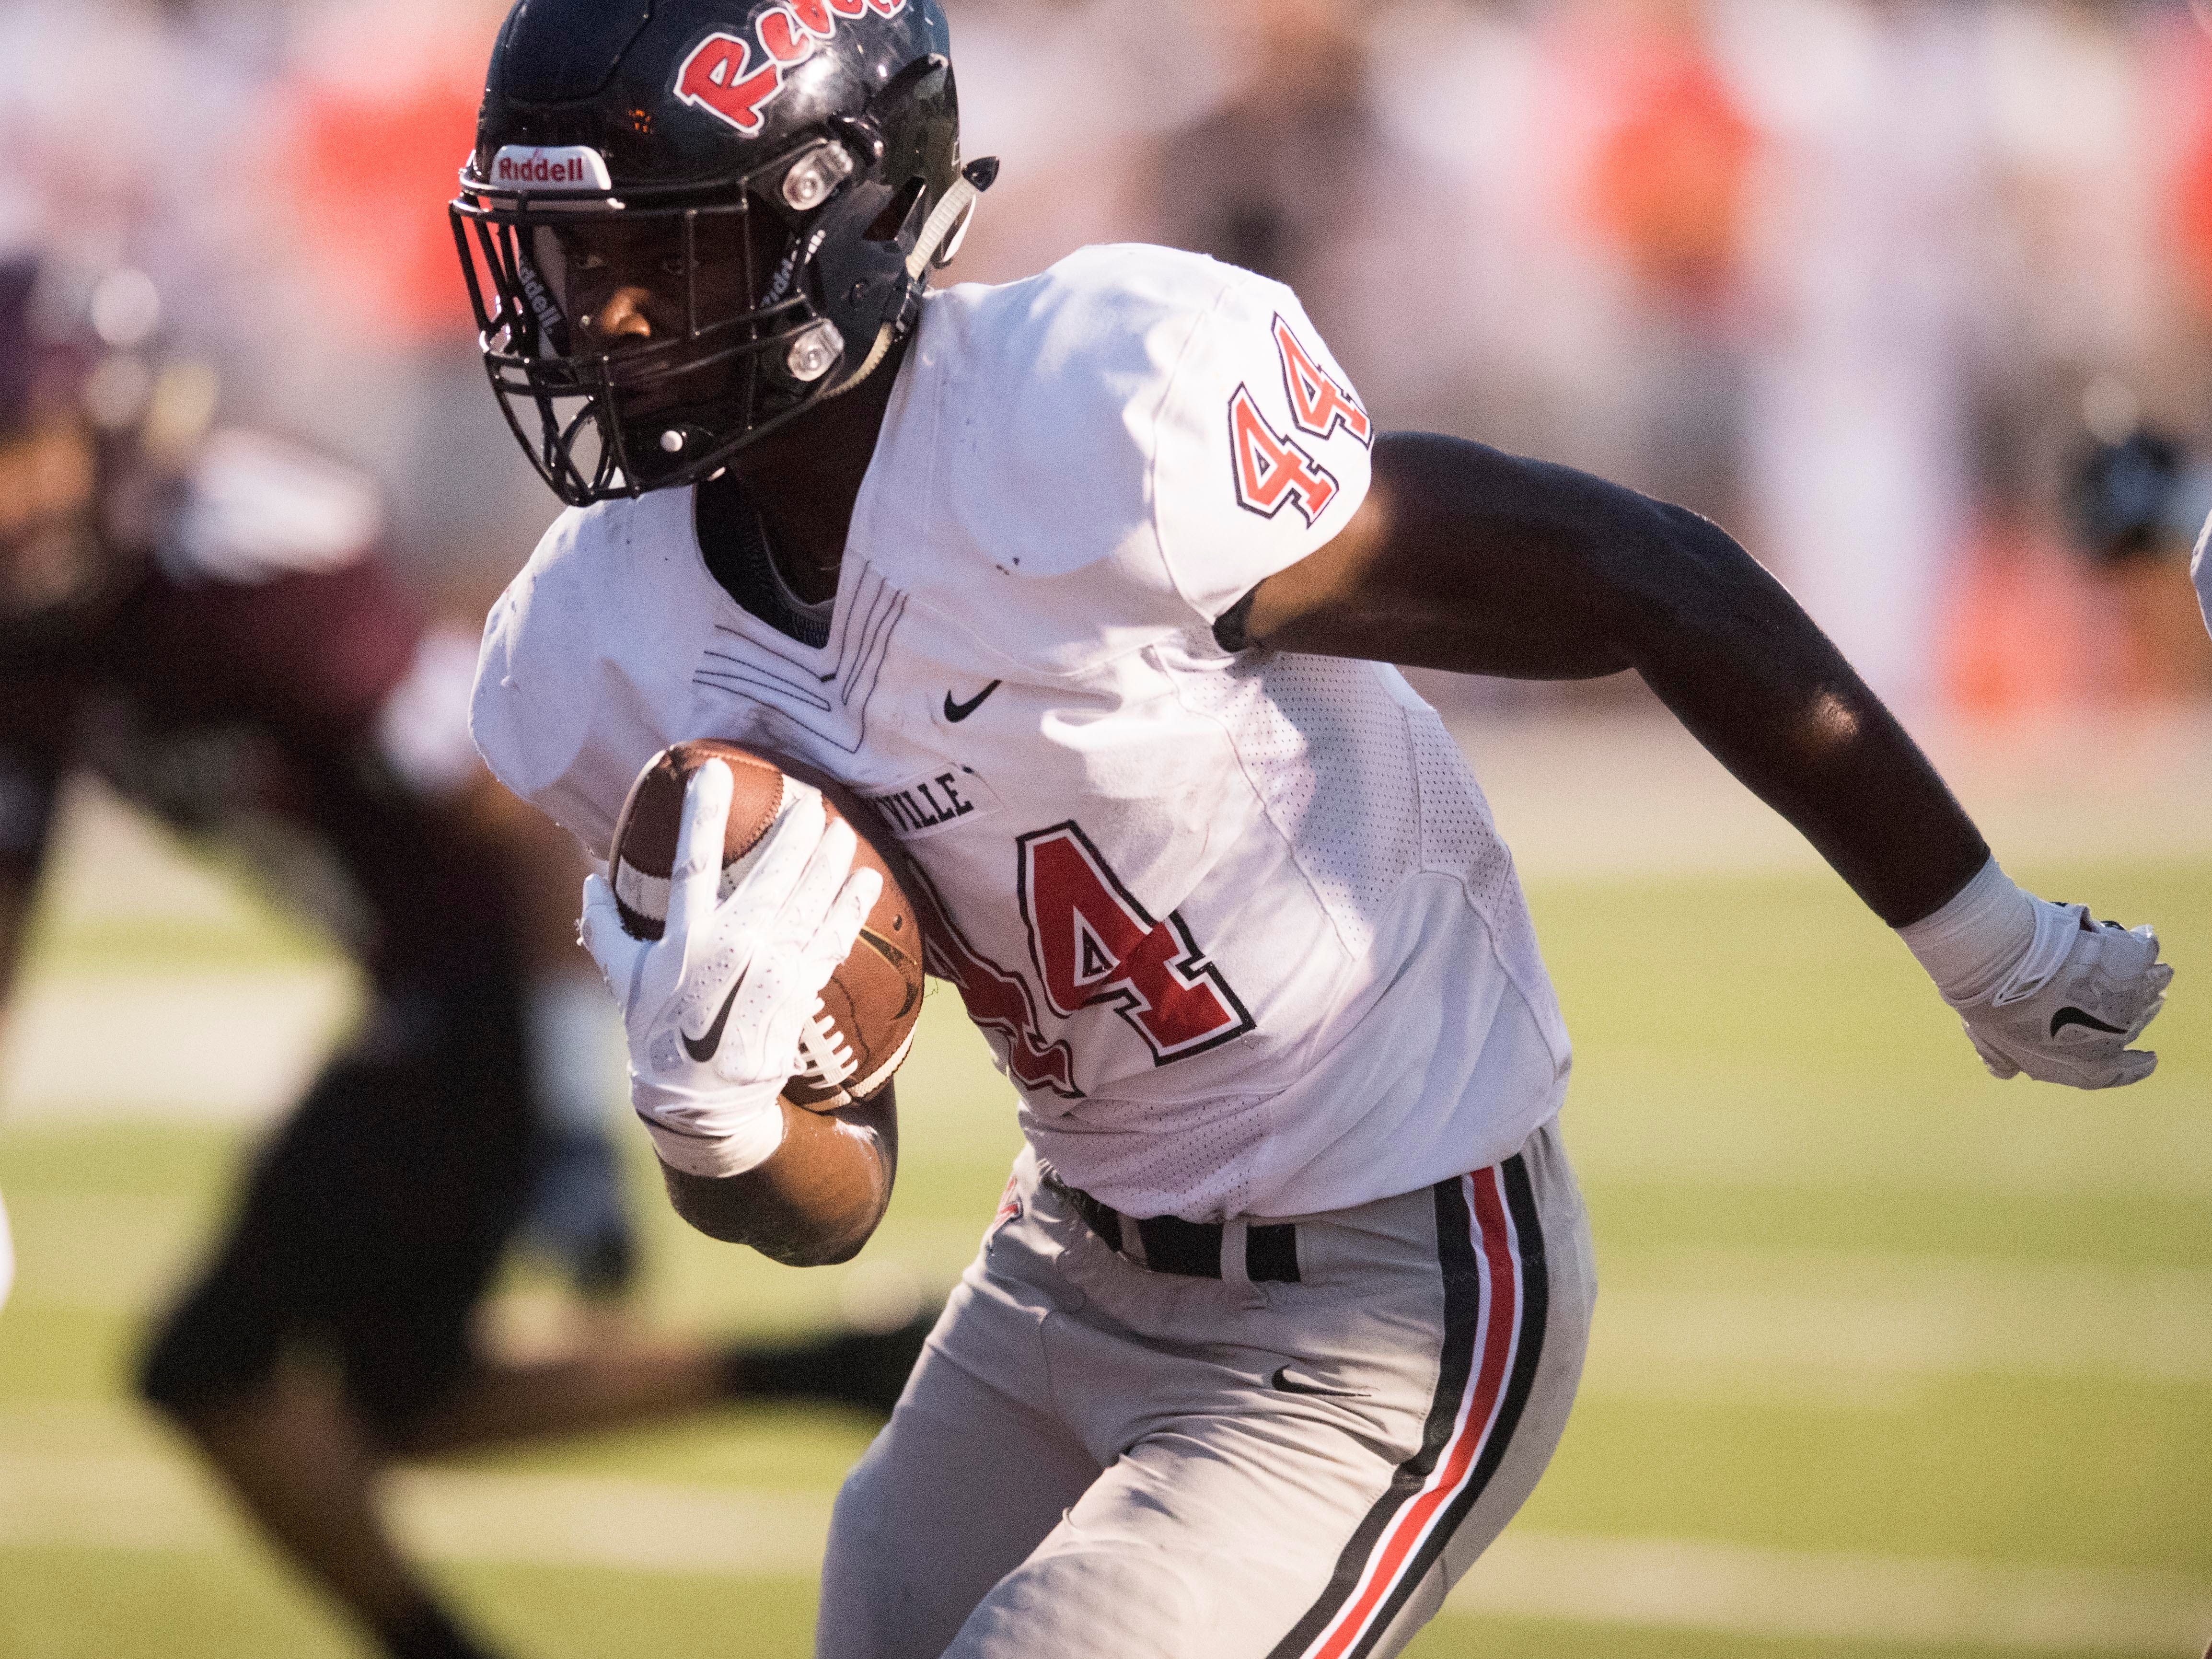 Maryville's Tee Hodge (44) scores a touchdown in the football game against Fulton on Friday, September 21, 2018.